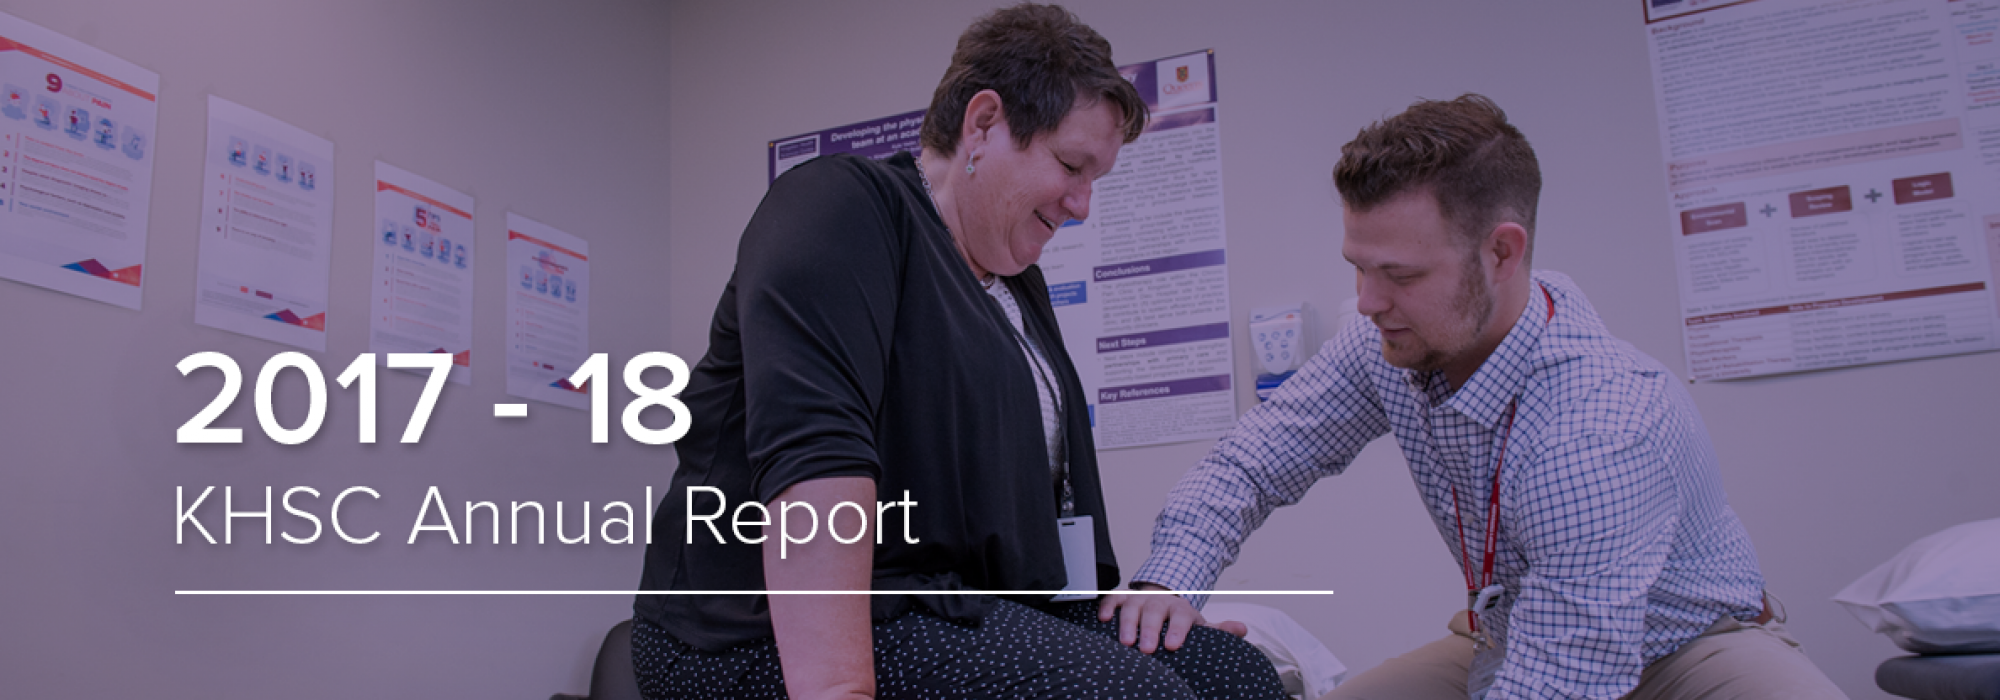 KHSC Annual Report Header Image